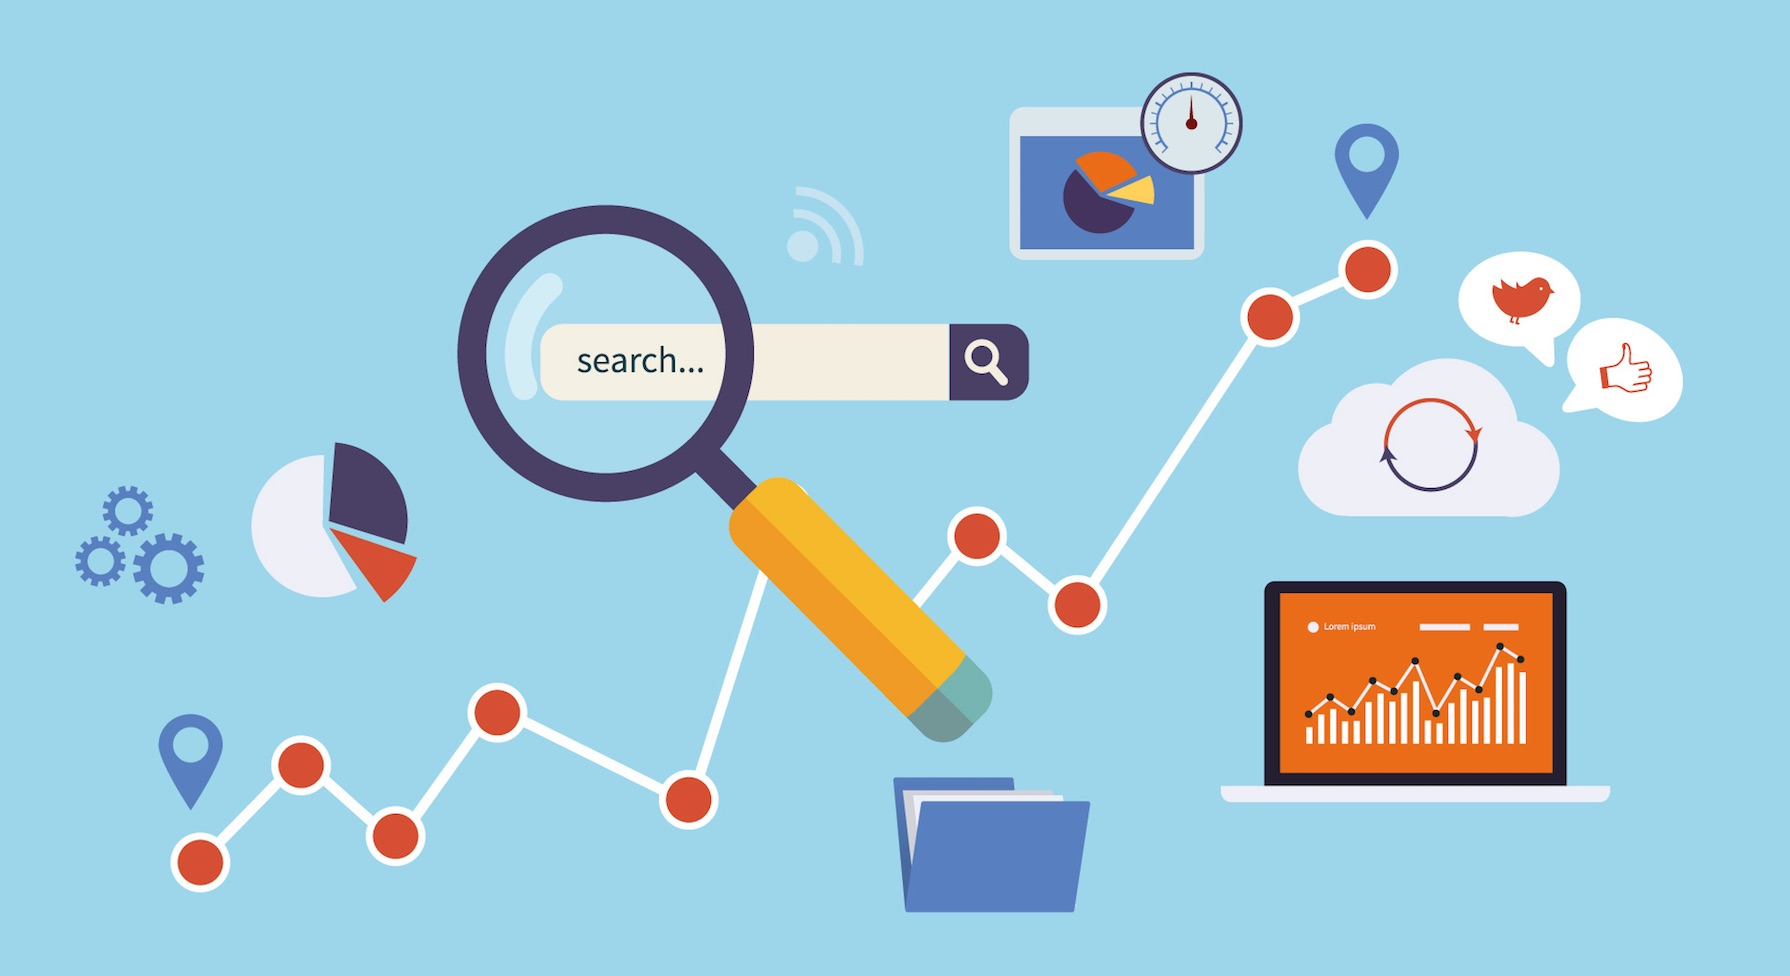 Use helpful SEO techniques for improving ranking of your website